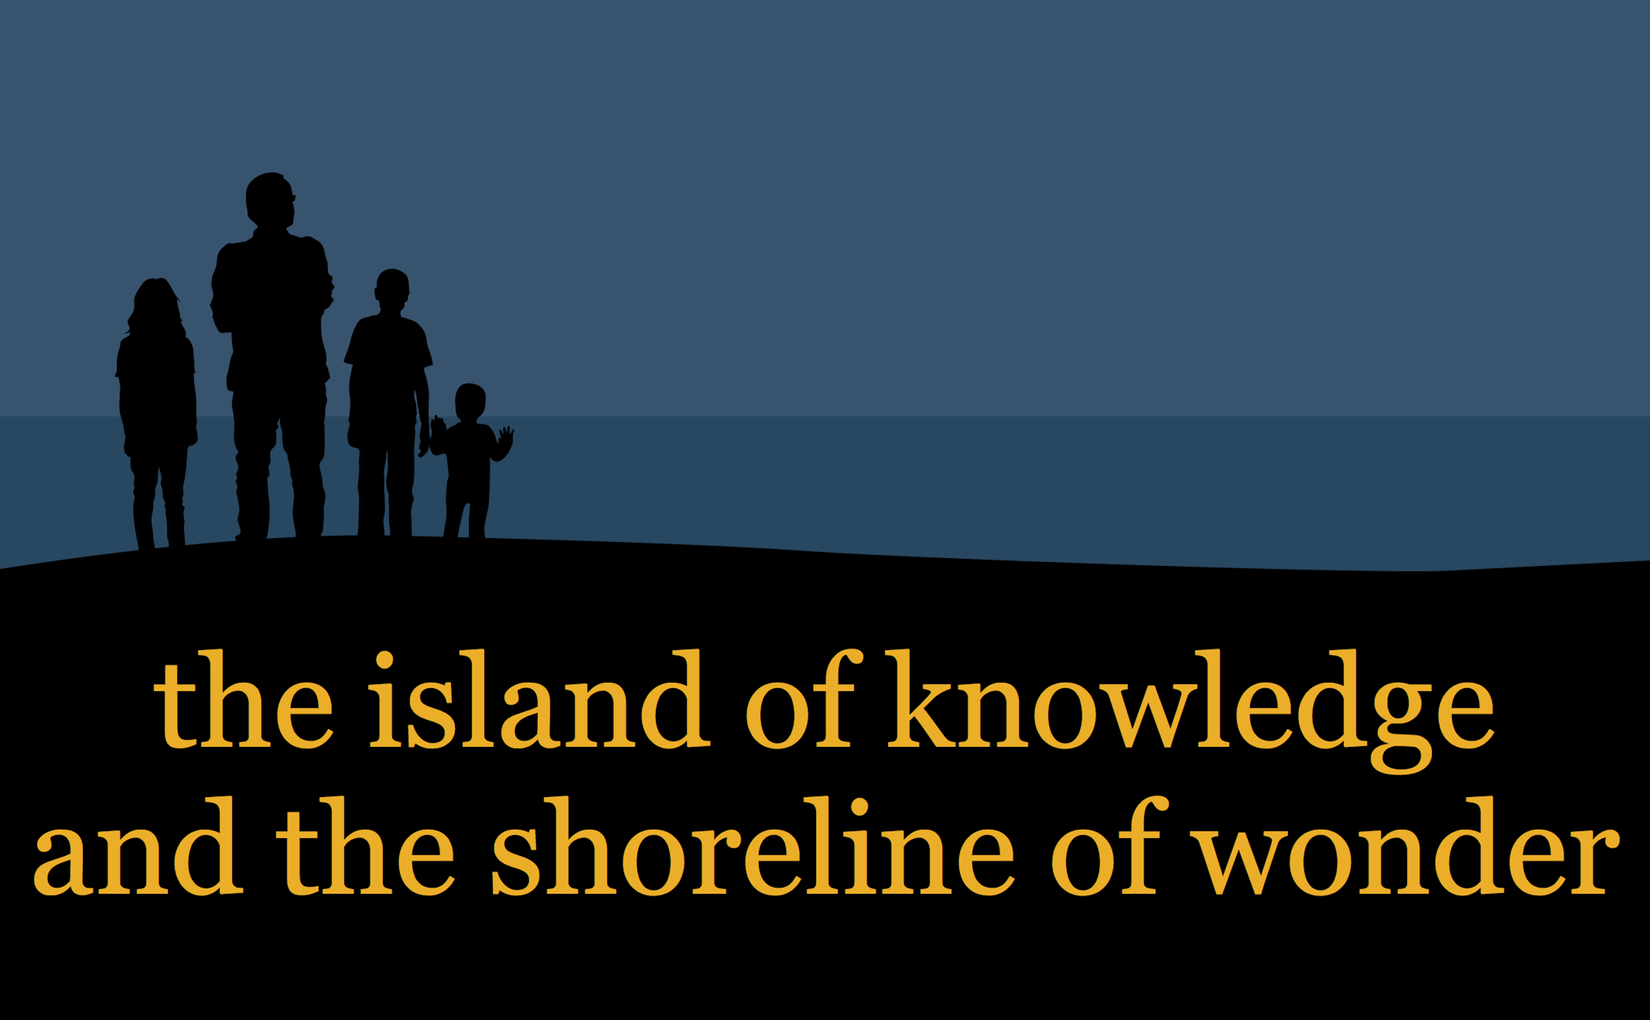 The Island of Knowledge and the Shoreline of Wonder